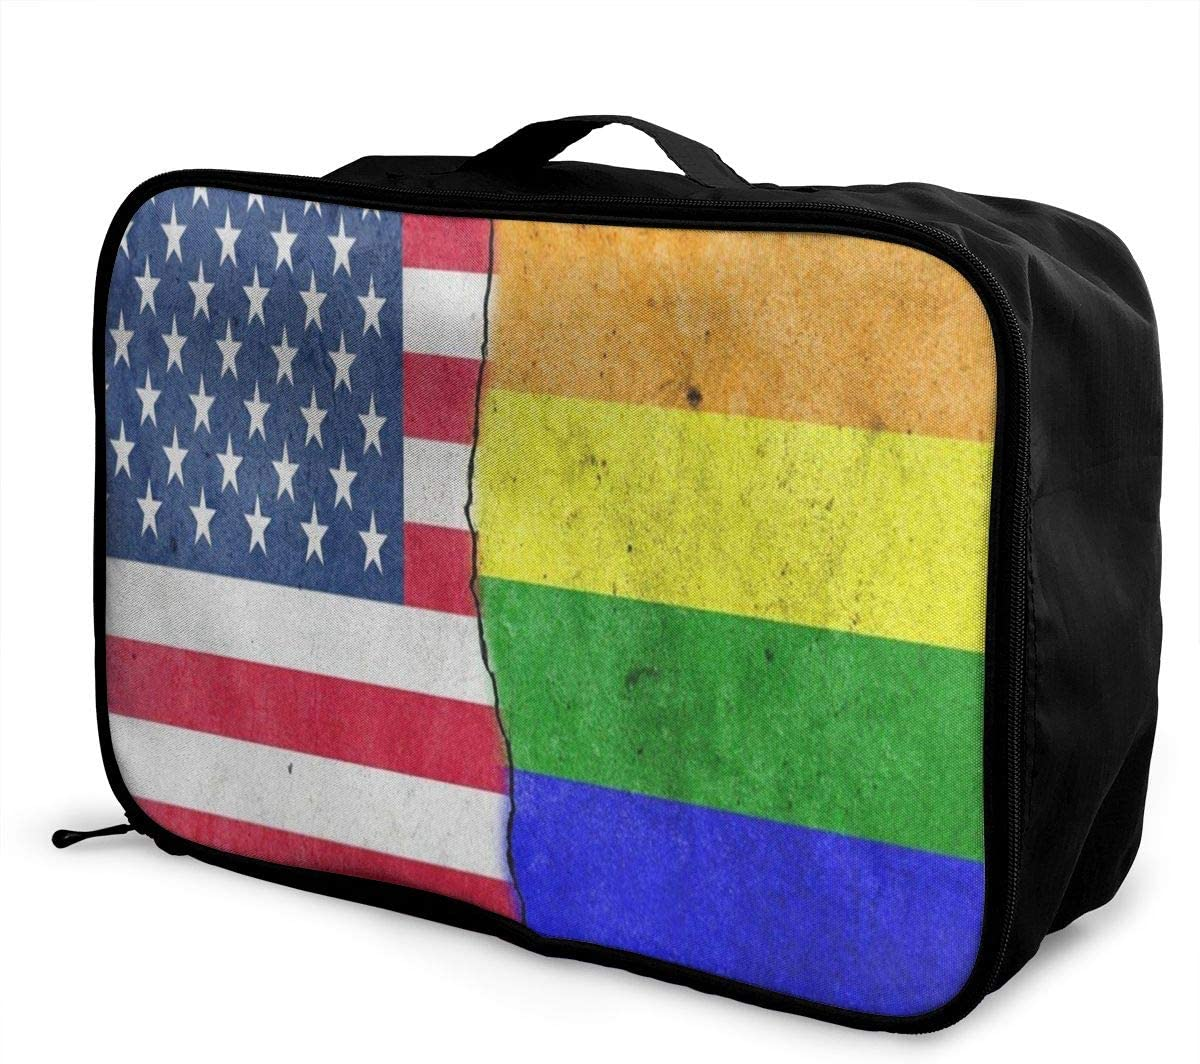 Travel Bags Watercolor American Flag Rainbow Wall Portable Duffel Hot Trolley Handle Luggage Bag